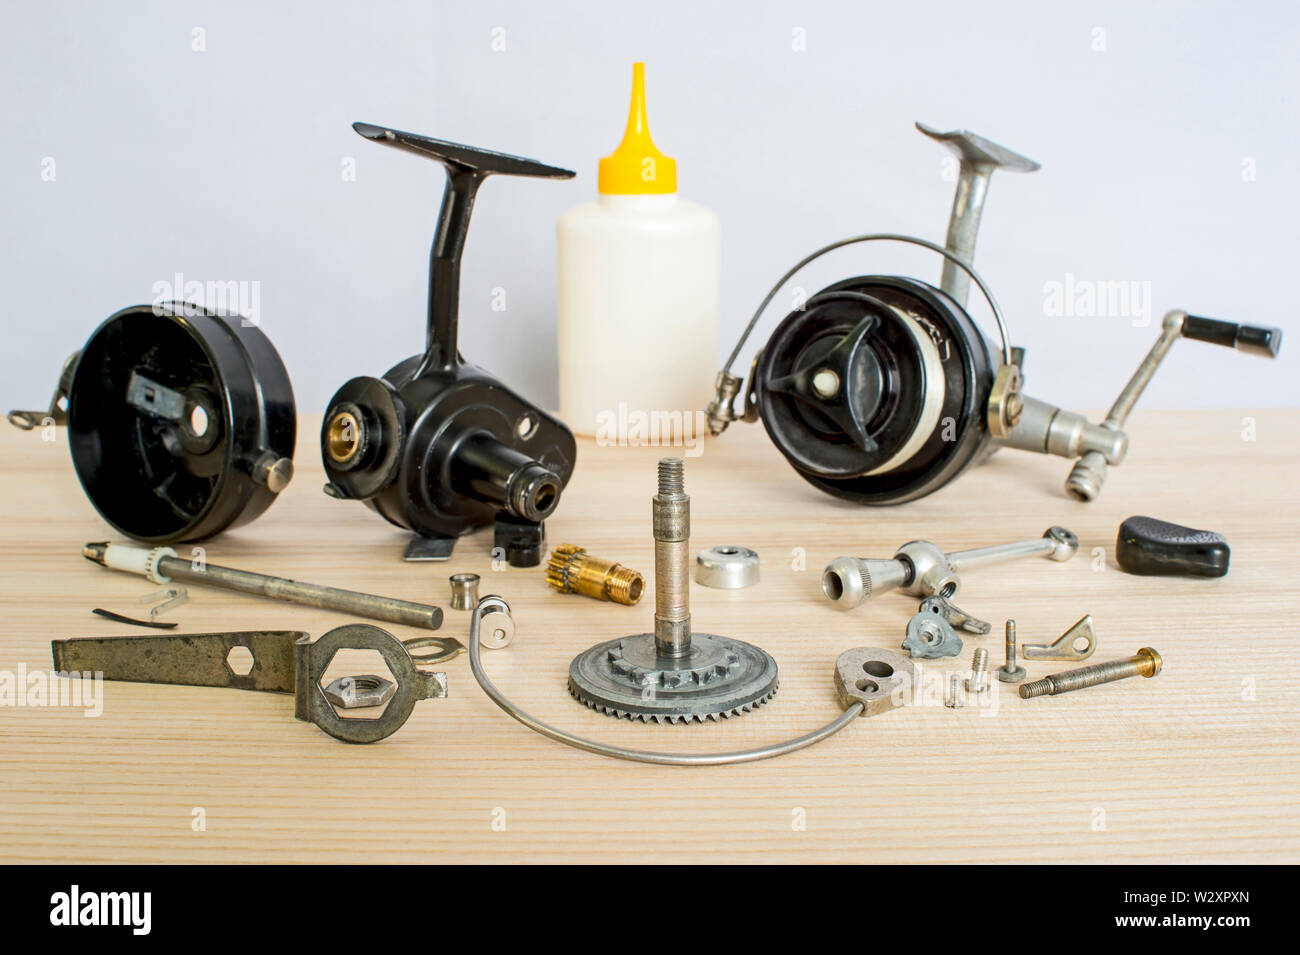 A fishing spinning reel as a whole and a second similar completely disassembled. Concept: parts of a whole. - Stock Image